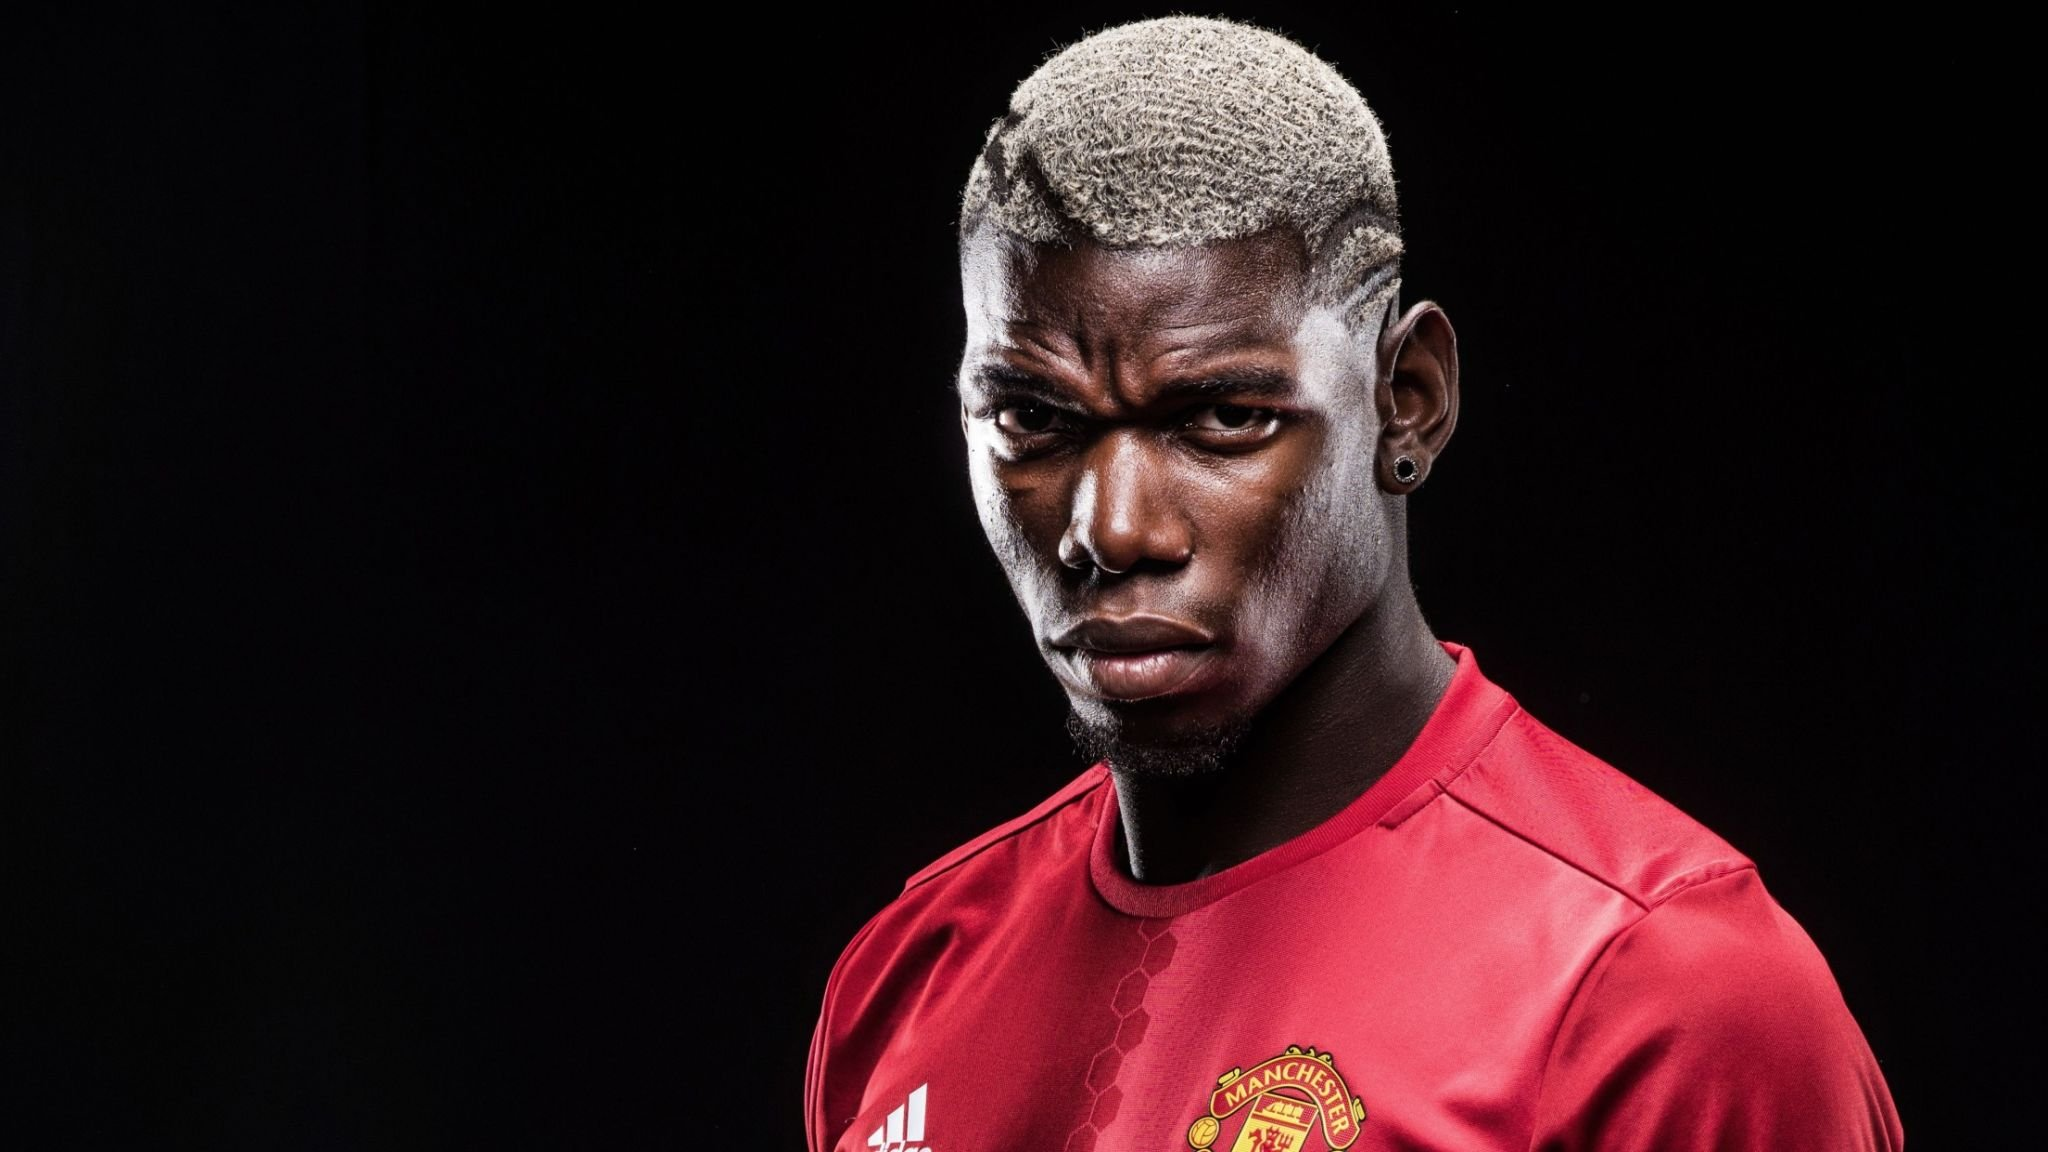 Paul Pogba (Juventus-Manchester United) is the world's most expensive football player.